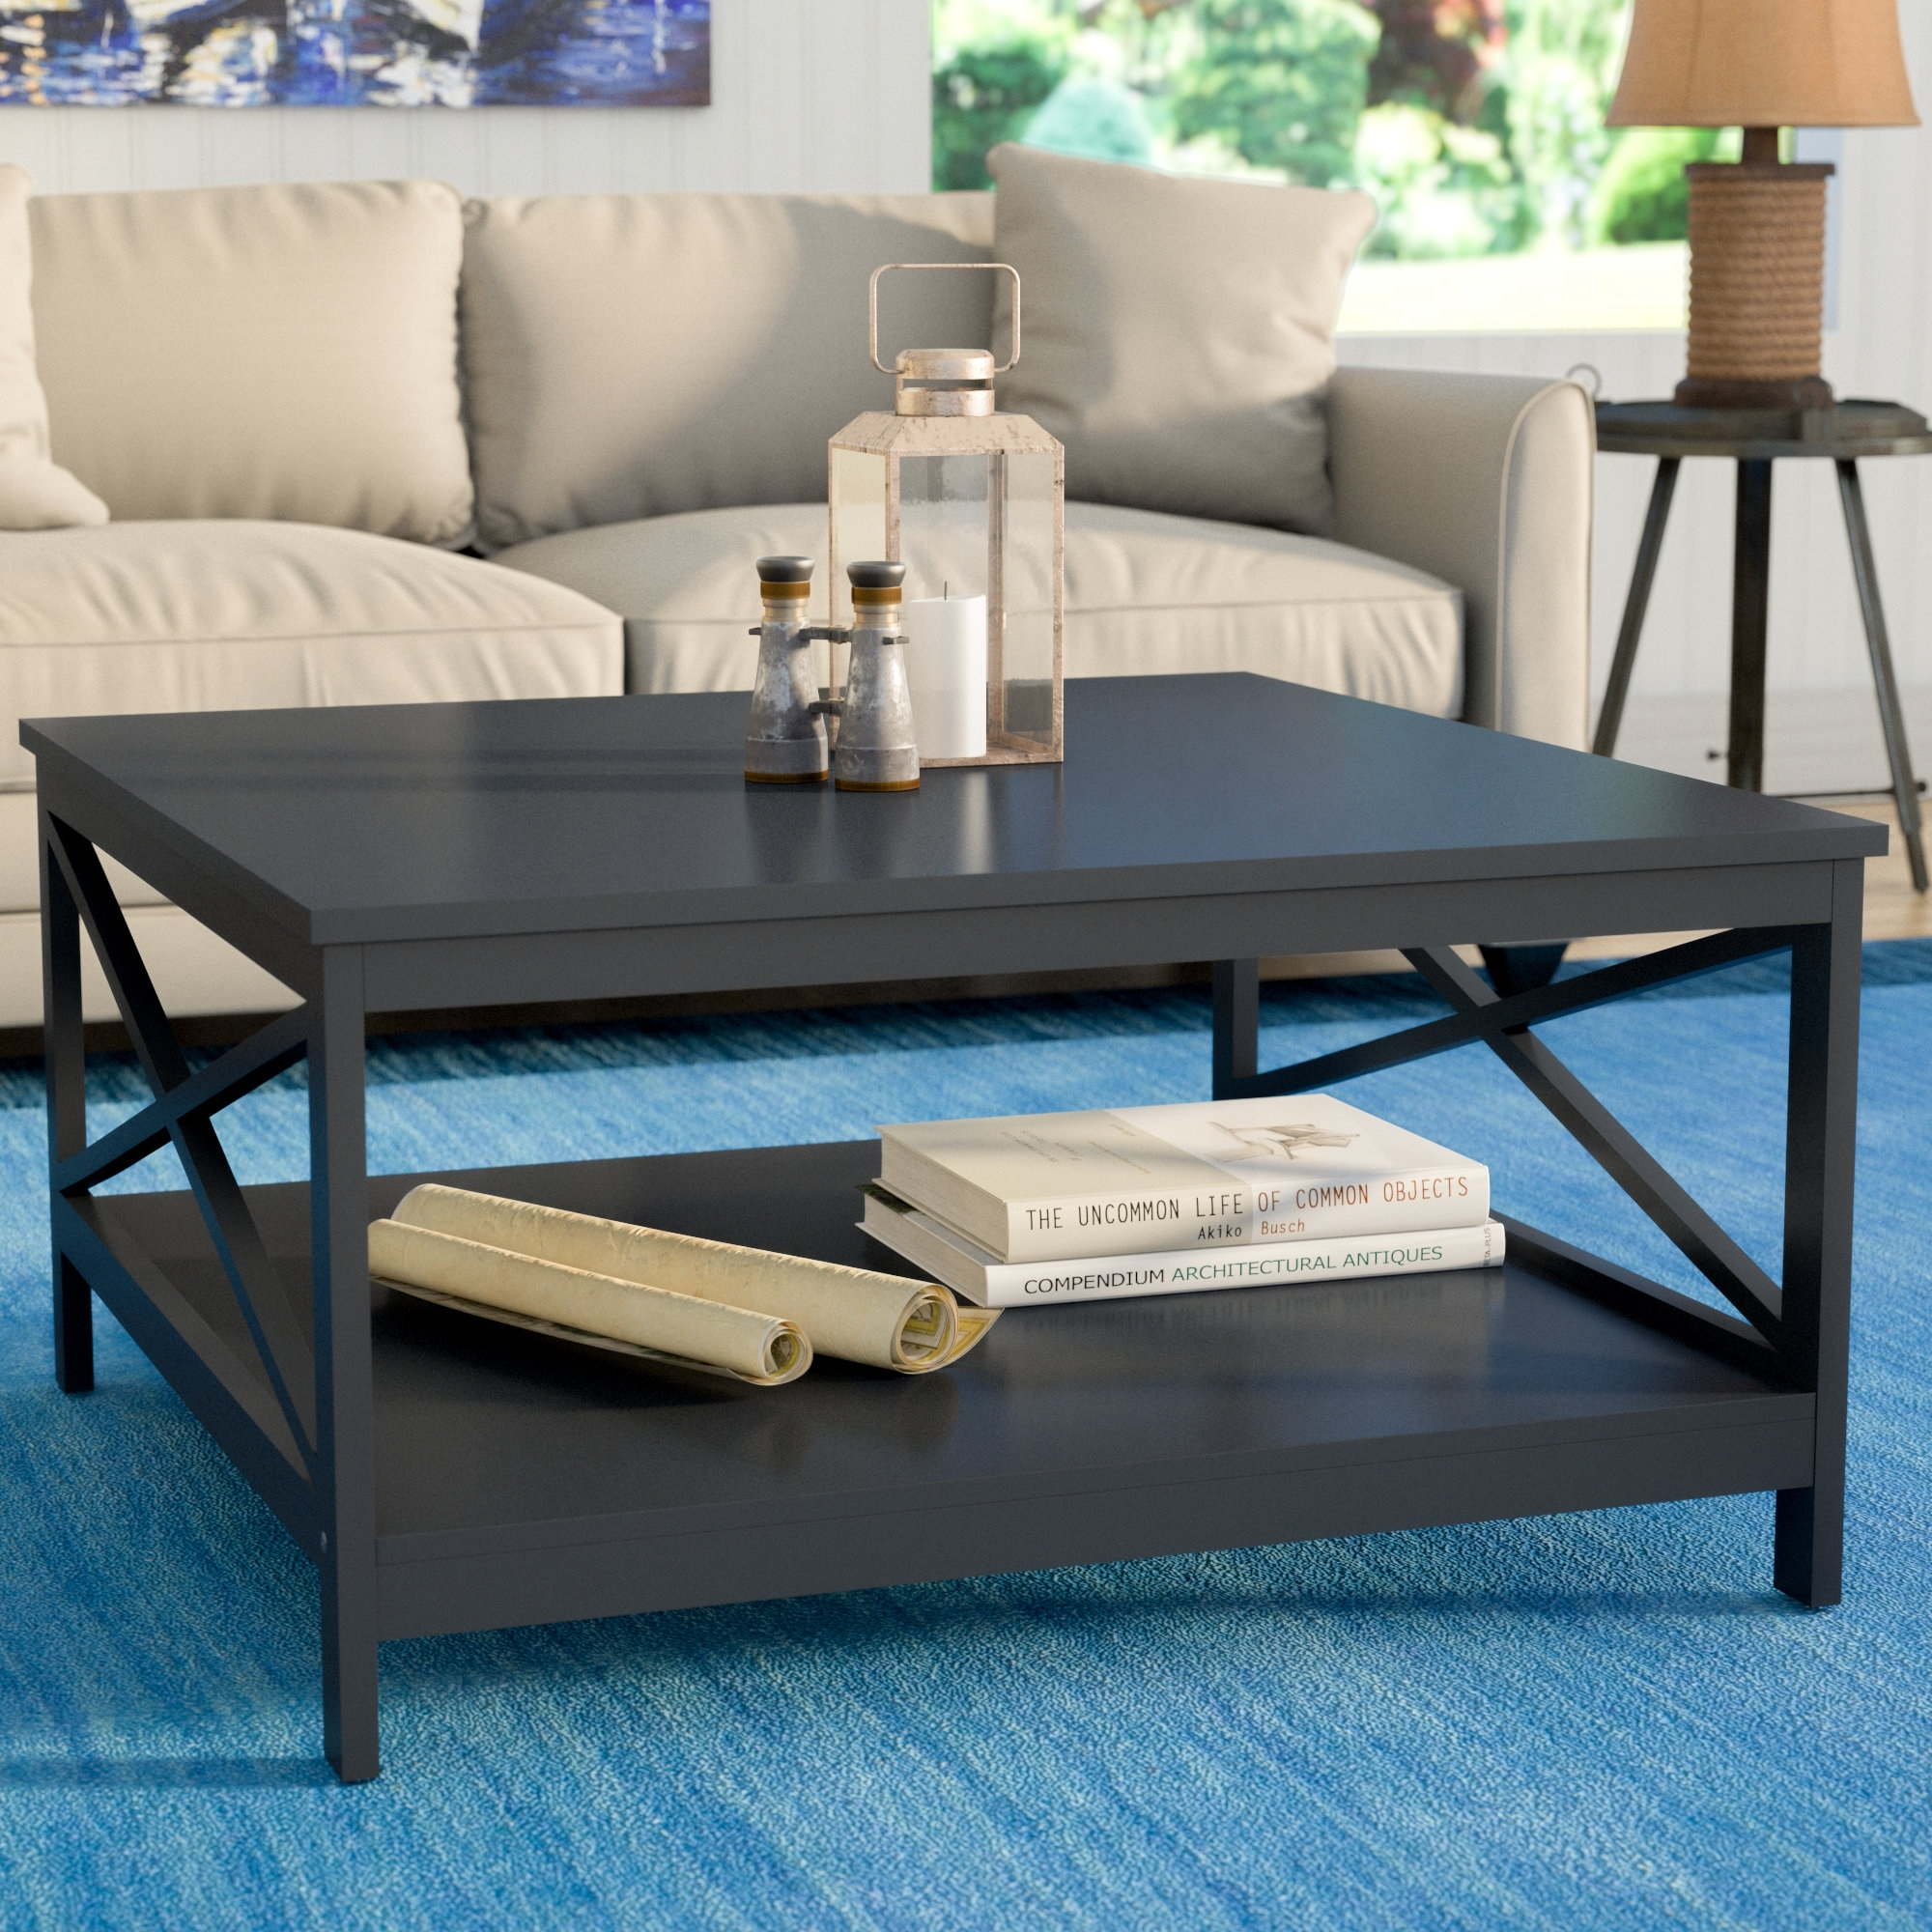 Beachcrest Home Stoneford Traditional Coffee Table & Reviews | Wayfair pertaining to Traditional Coffee Tables (Image 4 of 30)